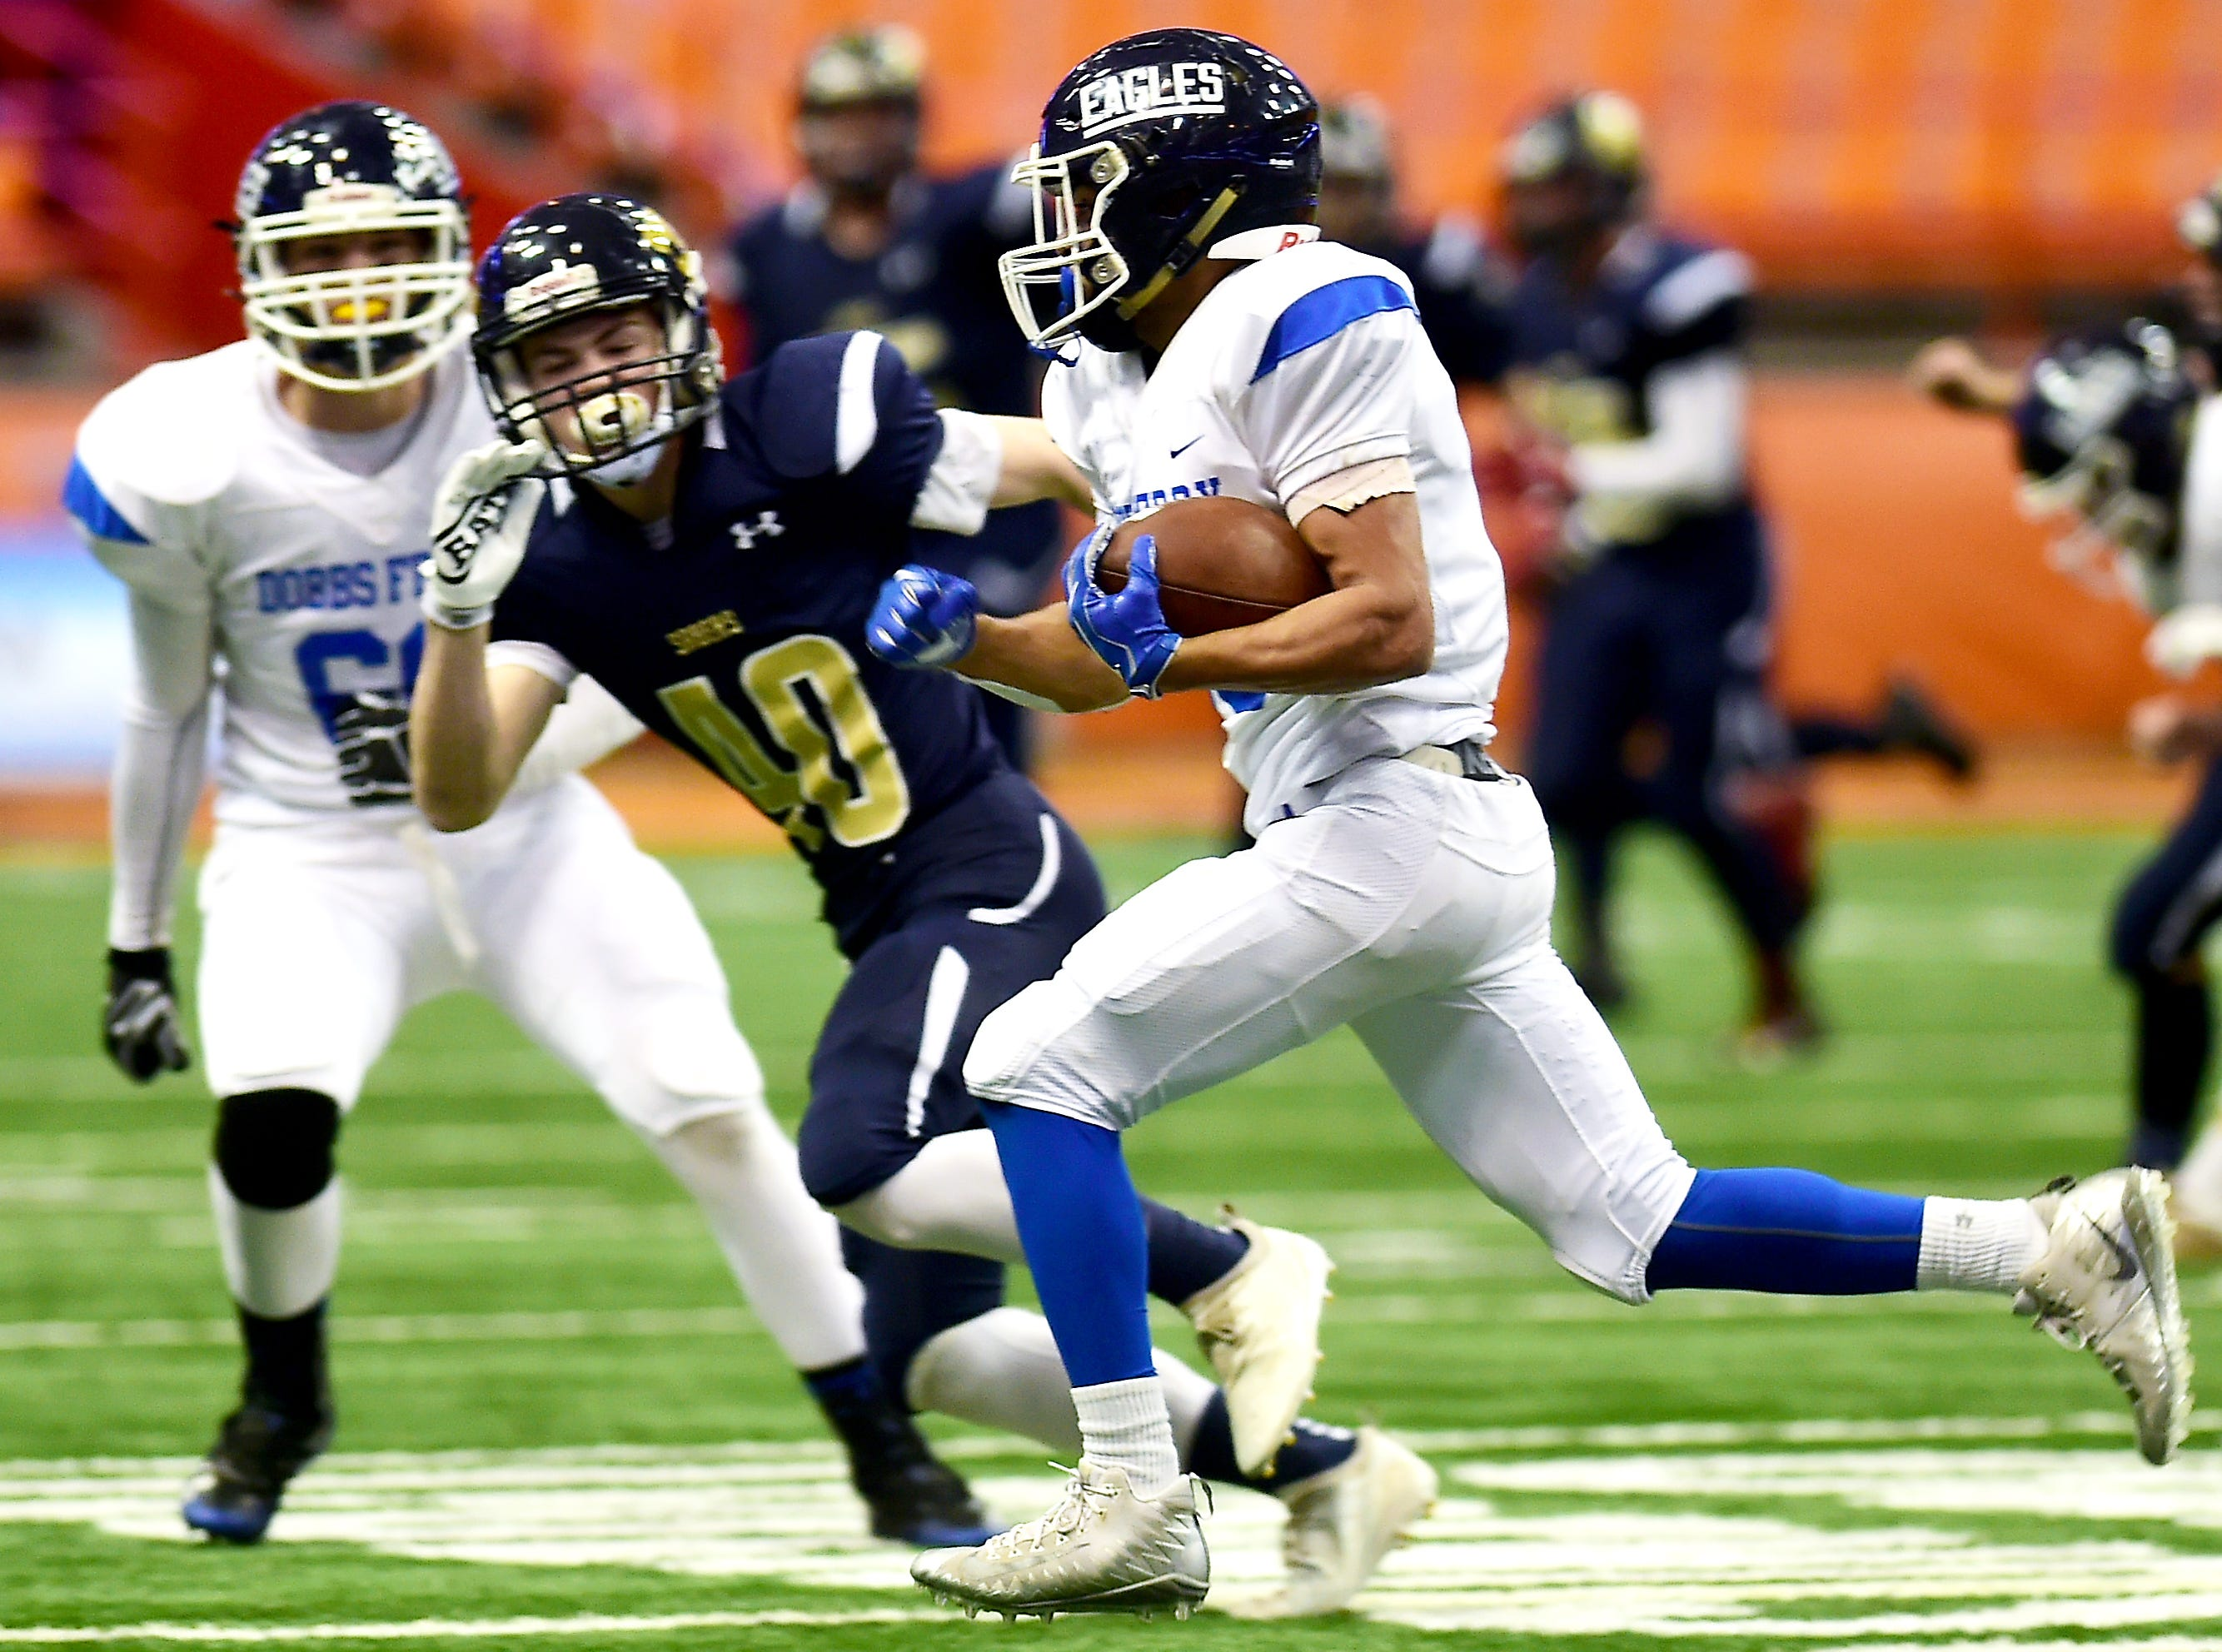 Emilio Nolasco (10) runs with the ball during the first half of Susquehanna Valley vs. Dobbs Ferry, Class C NYSPHSAA state football final, Carrier Dome, Syracuse. Friday, November 23, 2018.